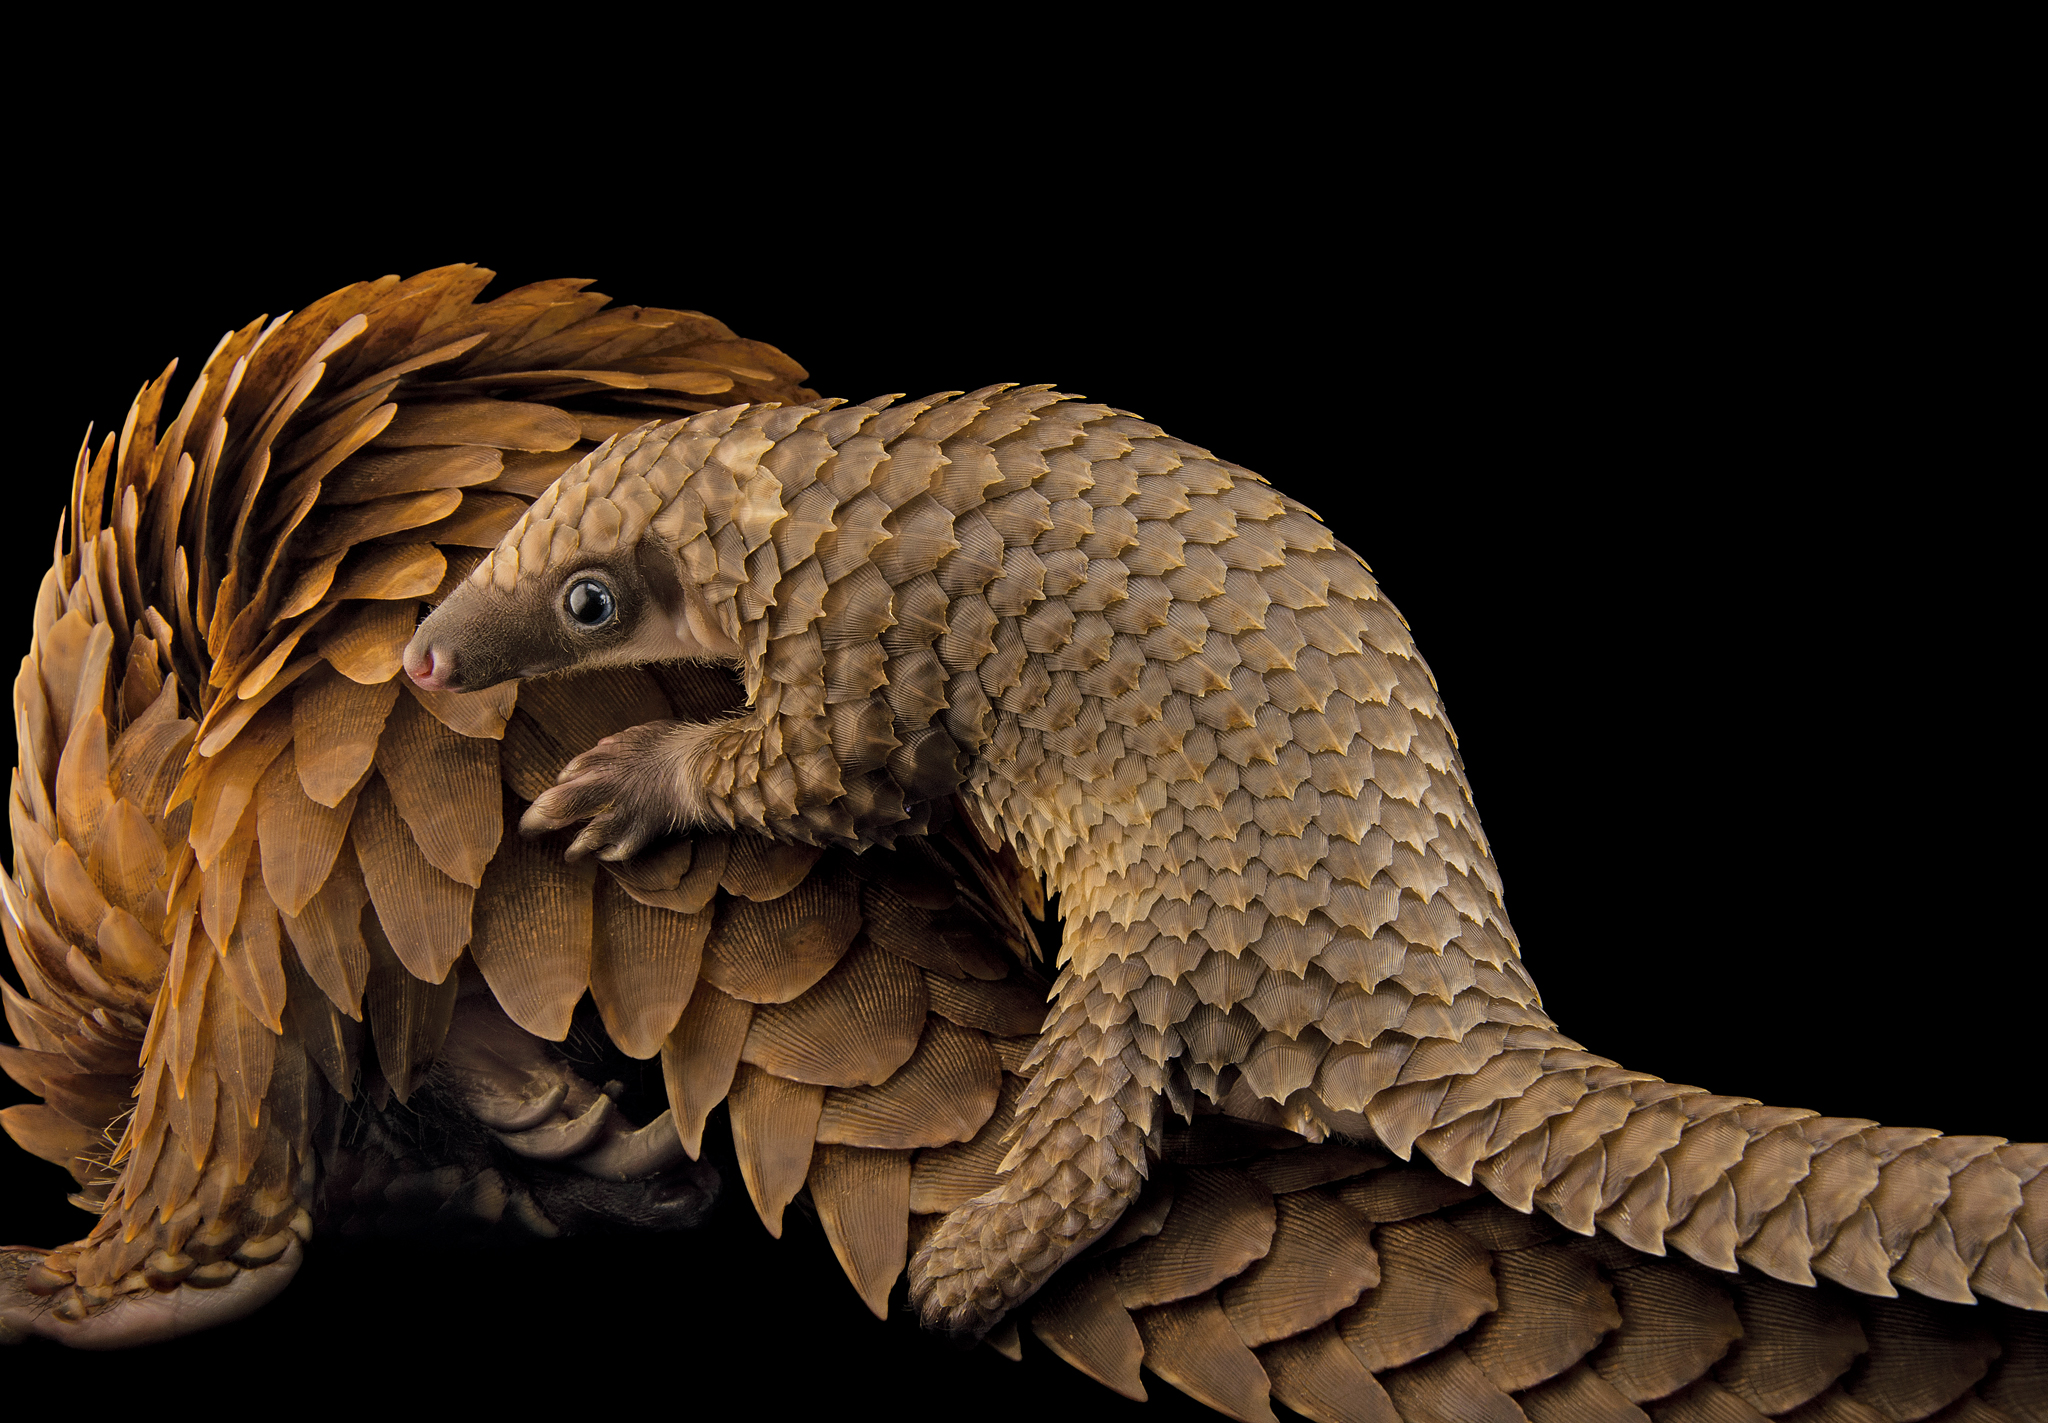 A baby white-bellied pangolin (Phataginus tricuspis) clings to her mother's back at a facility in Florida. At just 70 days old, this captive-born baby was a first in captivity! This species, like many other pangolin species, is illegally taken from the wild. Unfortunately, it is falsely believed that the protective keratin scales have curative properties.